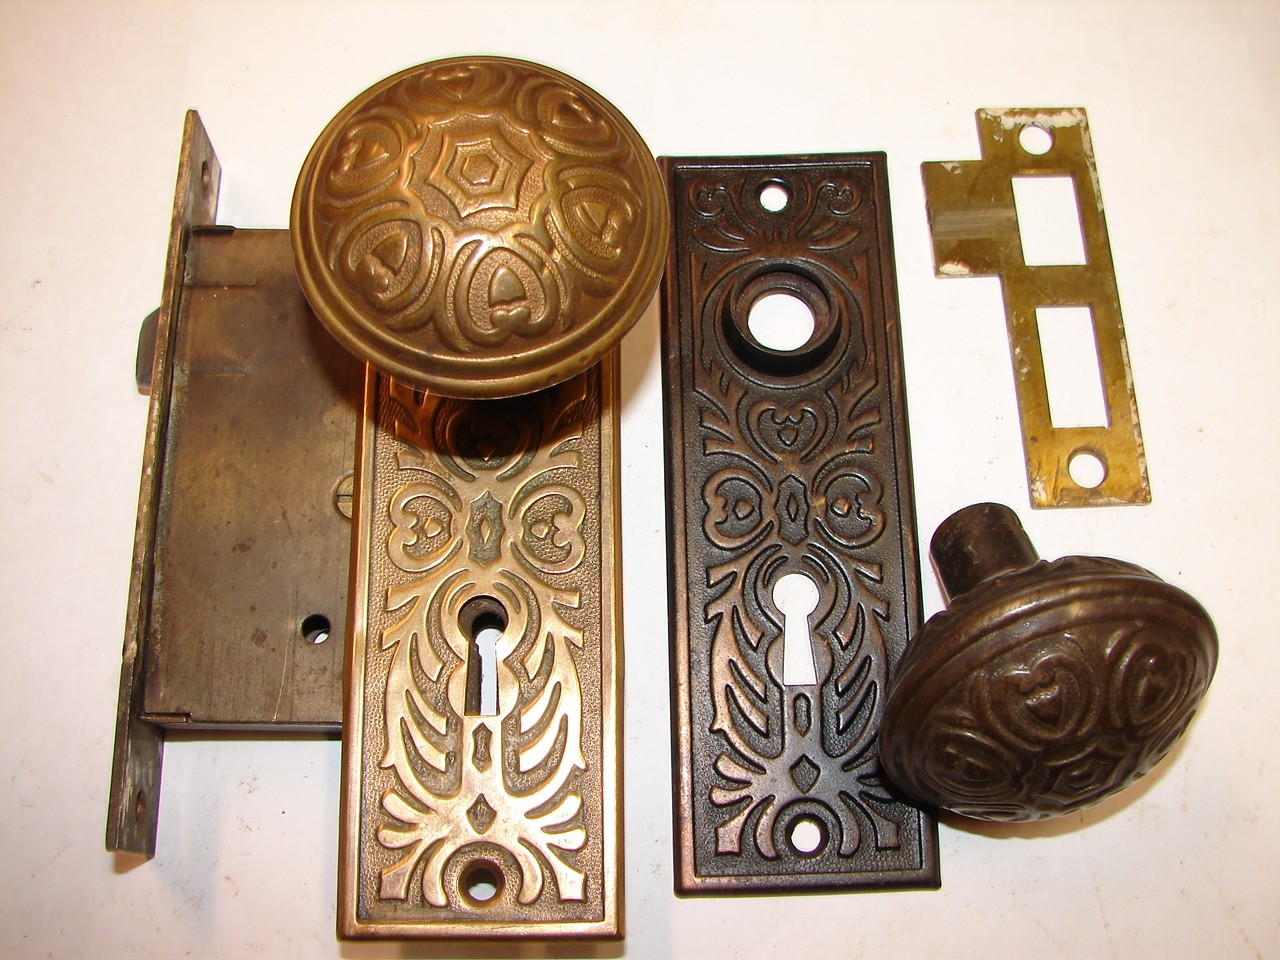 Item #DKS61, Antique Restoration Hardware - Robinson's Antique Hardware -brass & Iron Door Knobs